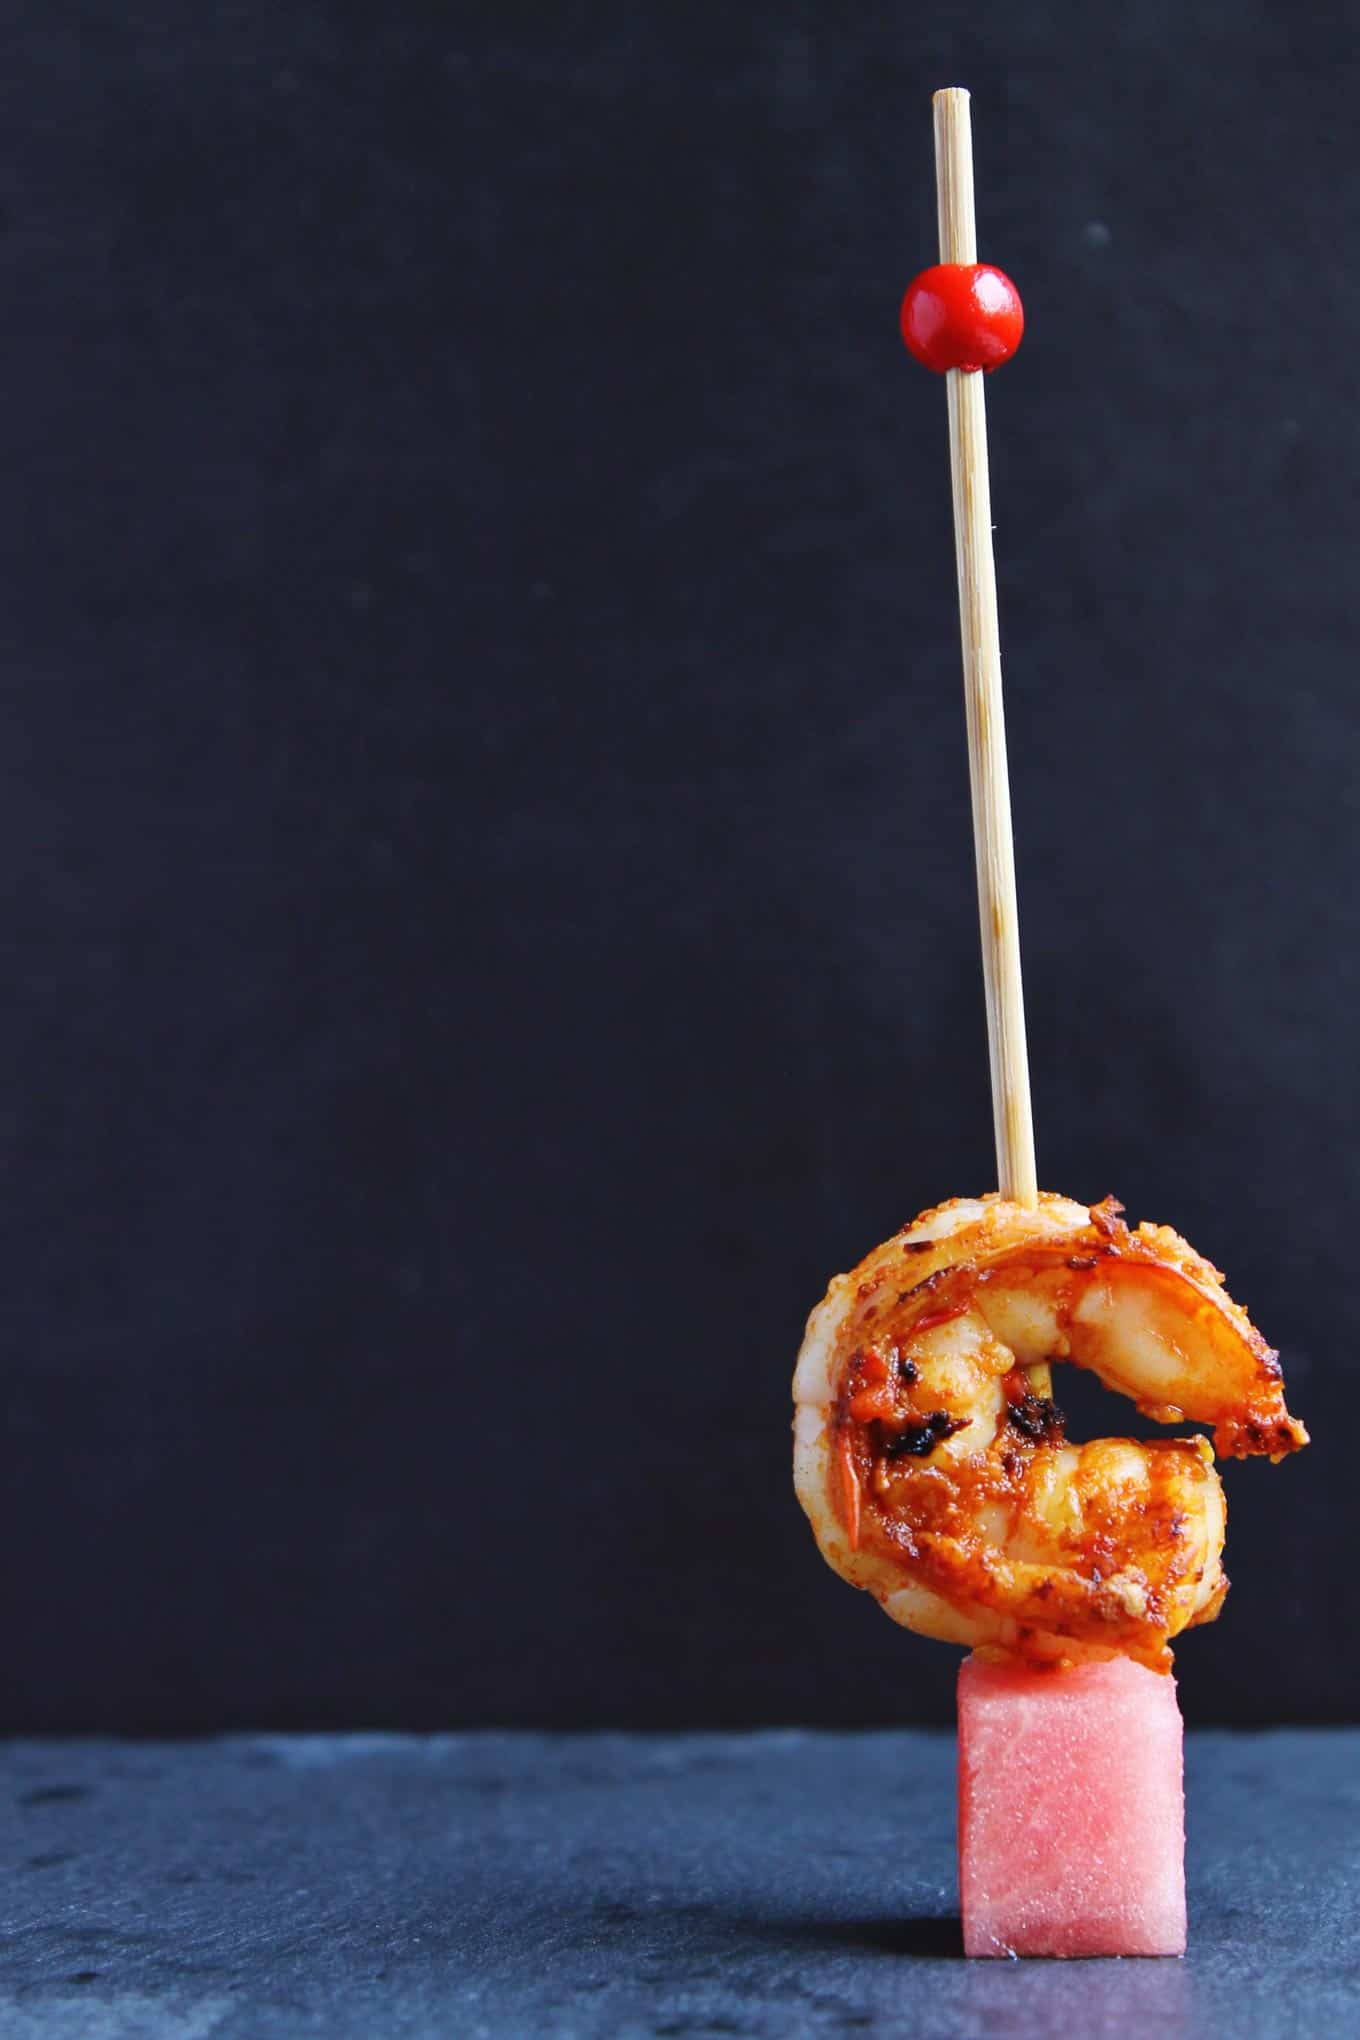 Spicy harissa shrimp and watermelon bites recipe! The perfect easy, healthy, appetizer for your next barbecue. SOOOO tasty!